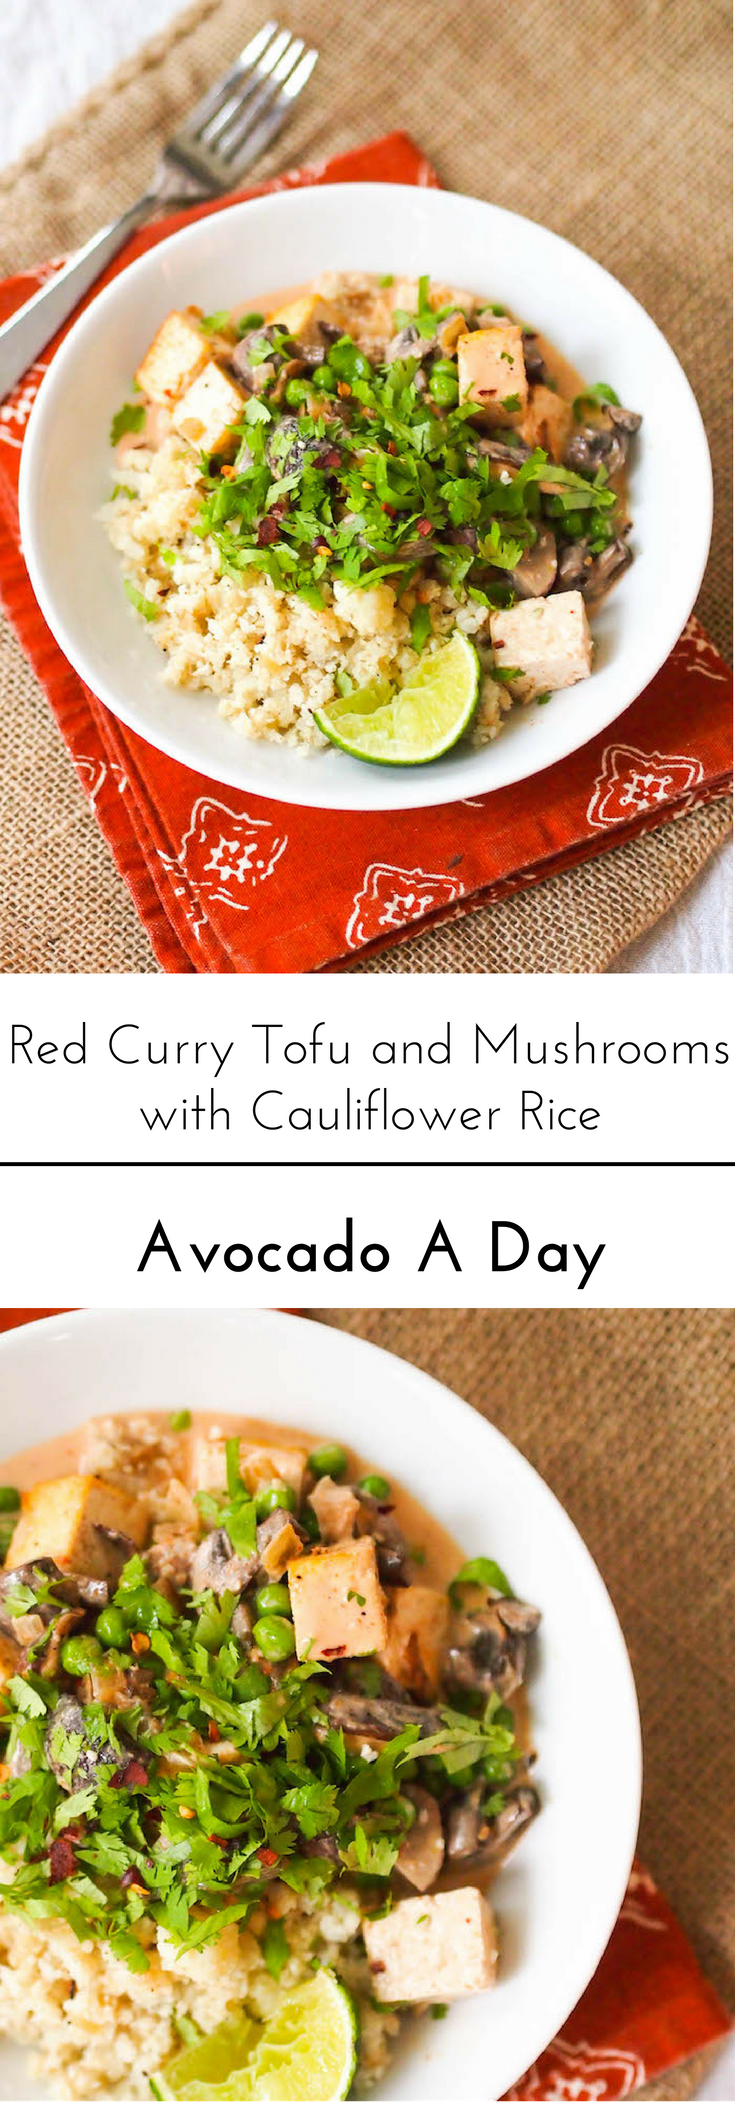 Serve this red curry tofu over cauliflower rice! Packed with veggies and gluten free!